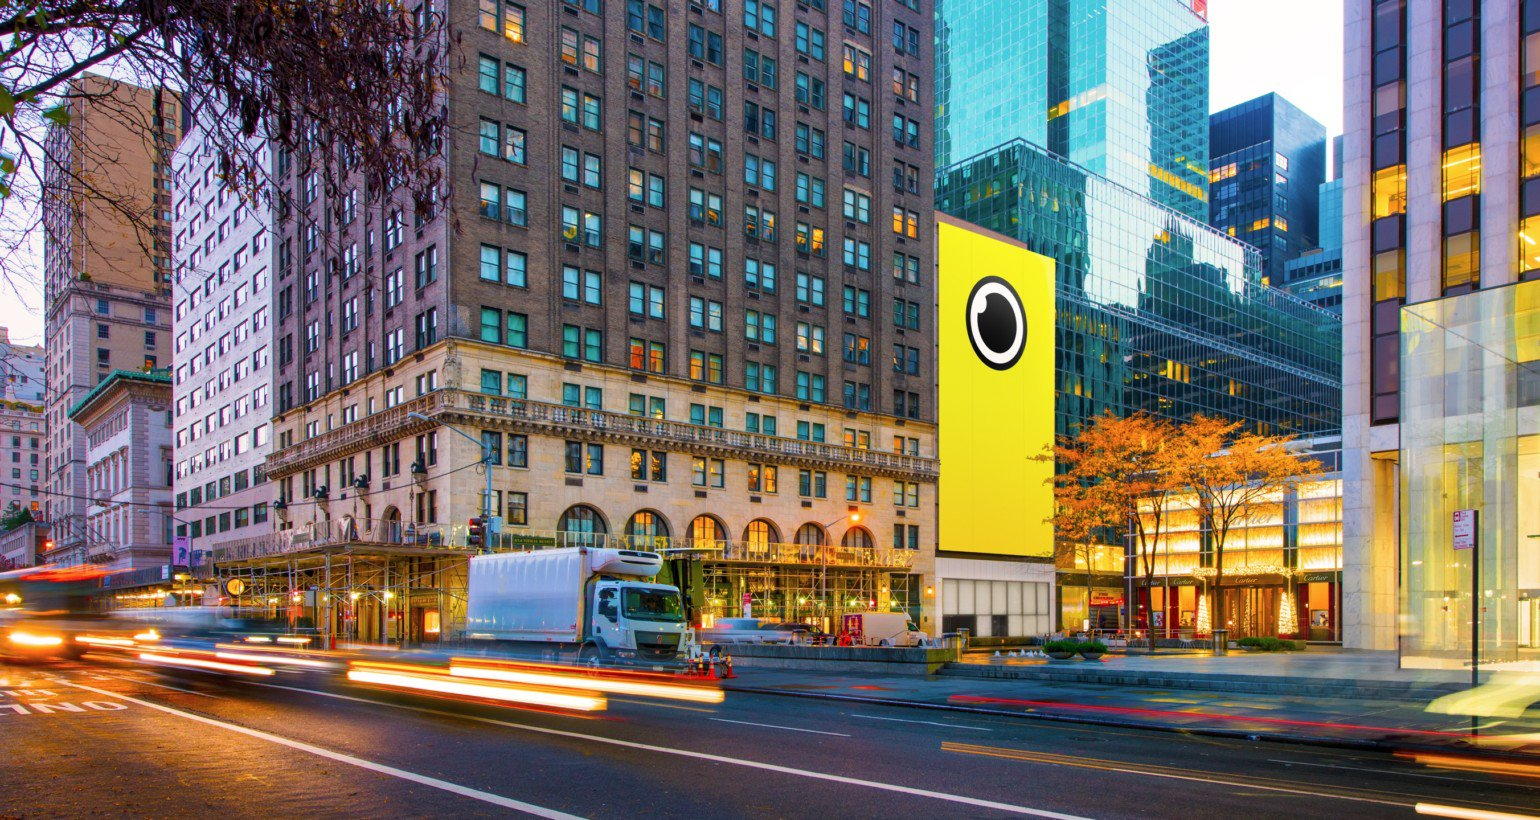 Snapchat's Spectacles just opened a New York pop-up store https://t.co/IL8DCLcCvg https://t.co/e9veef9tFy